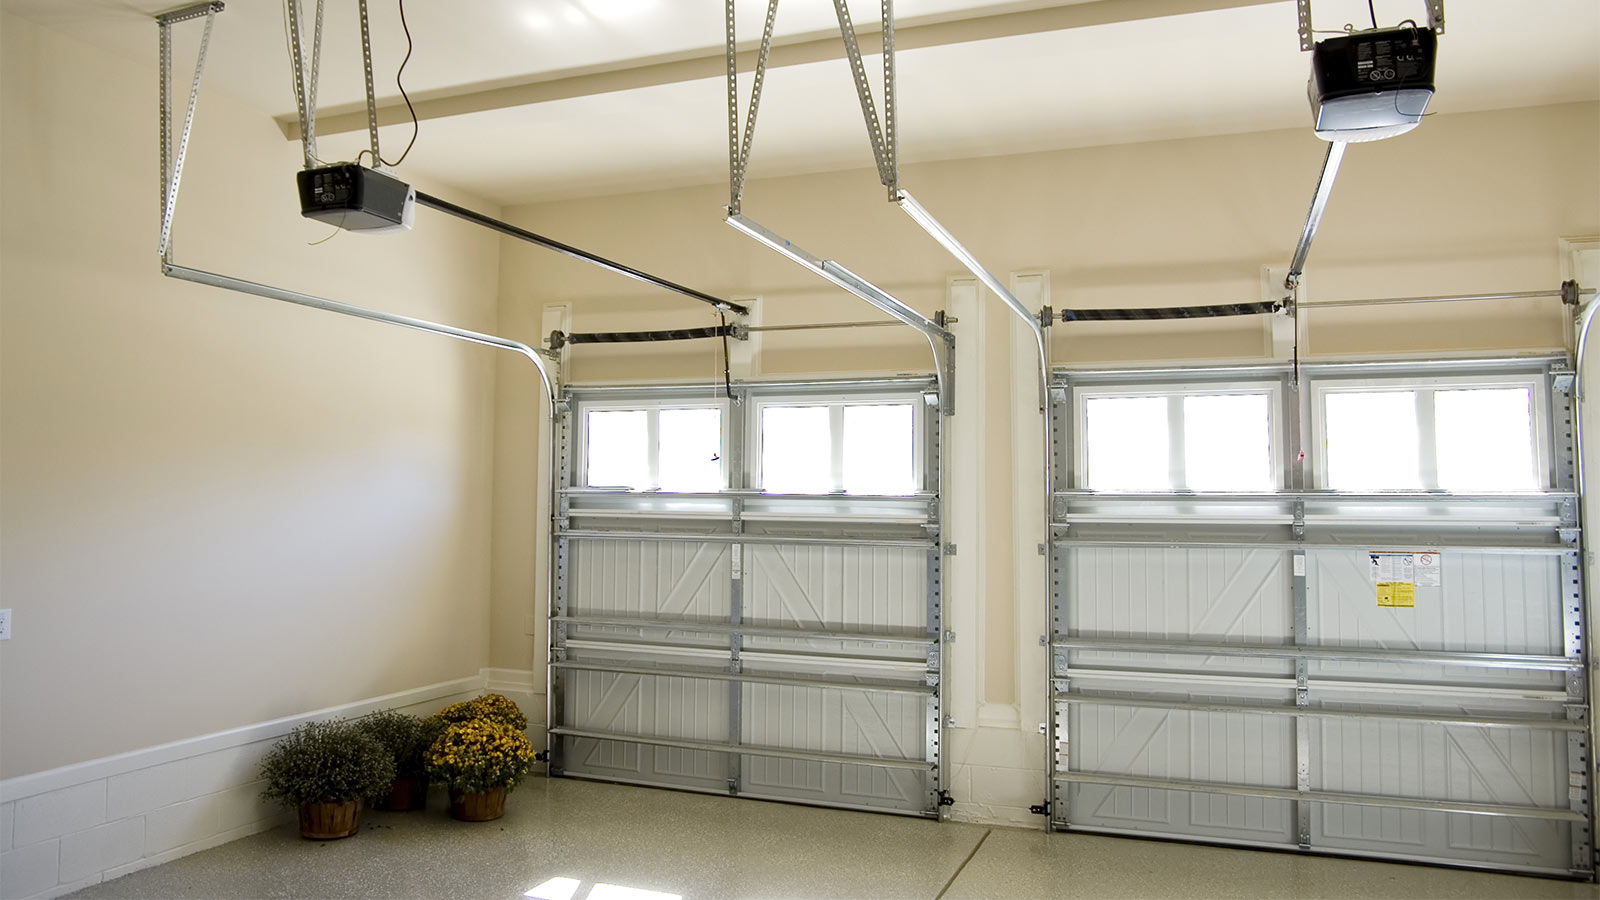 Sectional Garage Doors from Window Roller Shutters Hatfield suppliers.